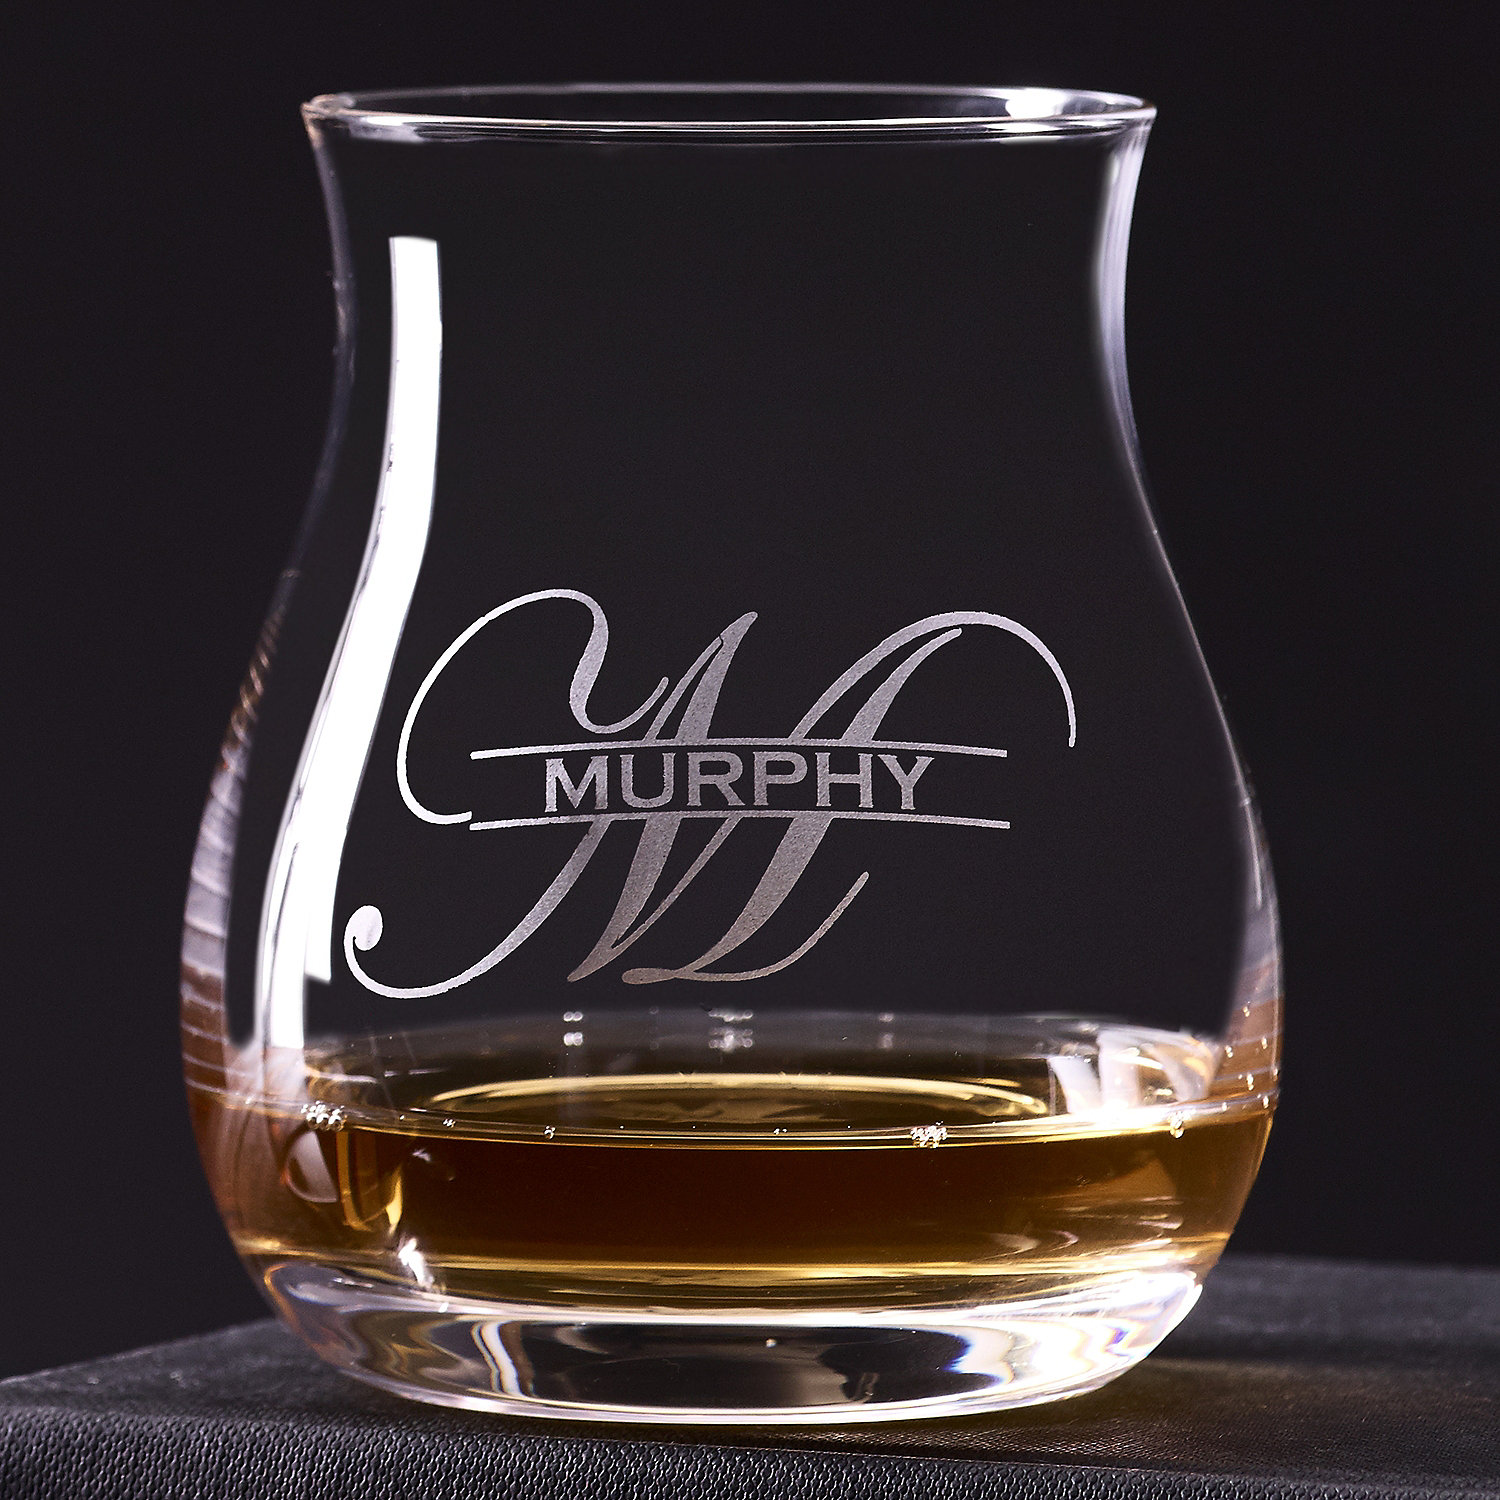 25b34185d3b7 Personalized Glencairn Wide-Bowl Whisky Glasses (Set of 4) - Wine Enthusiast